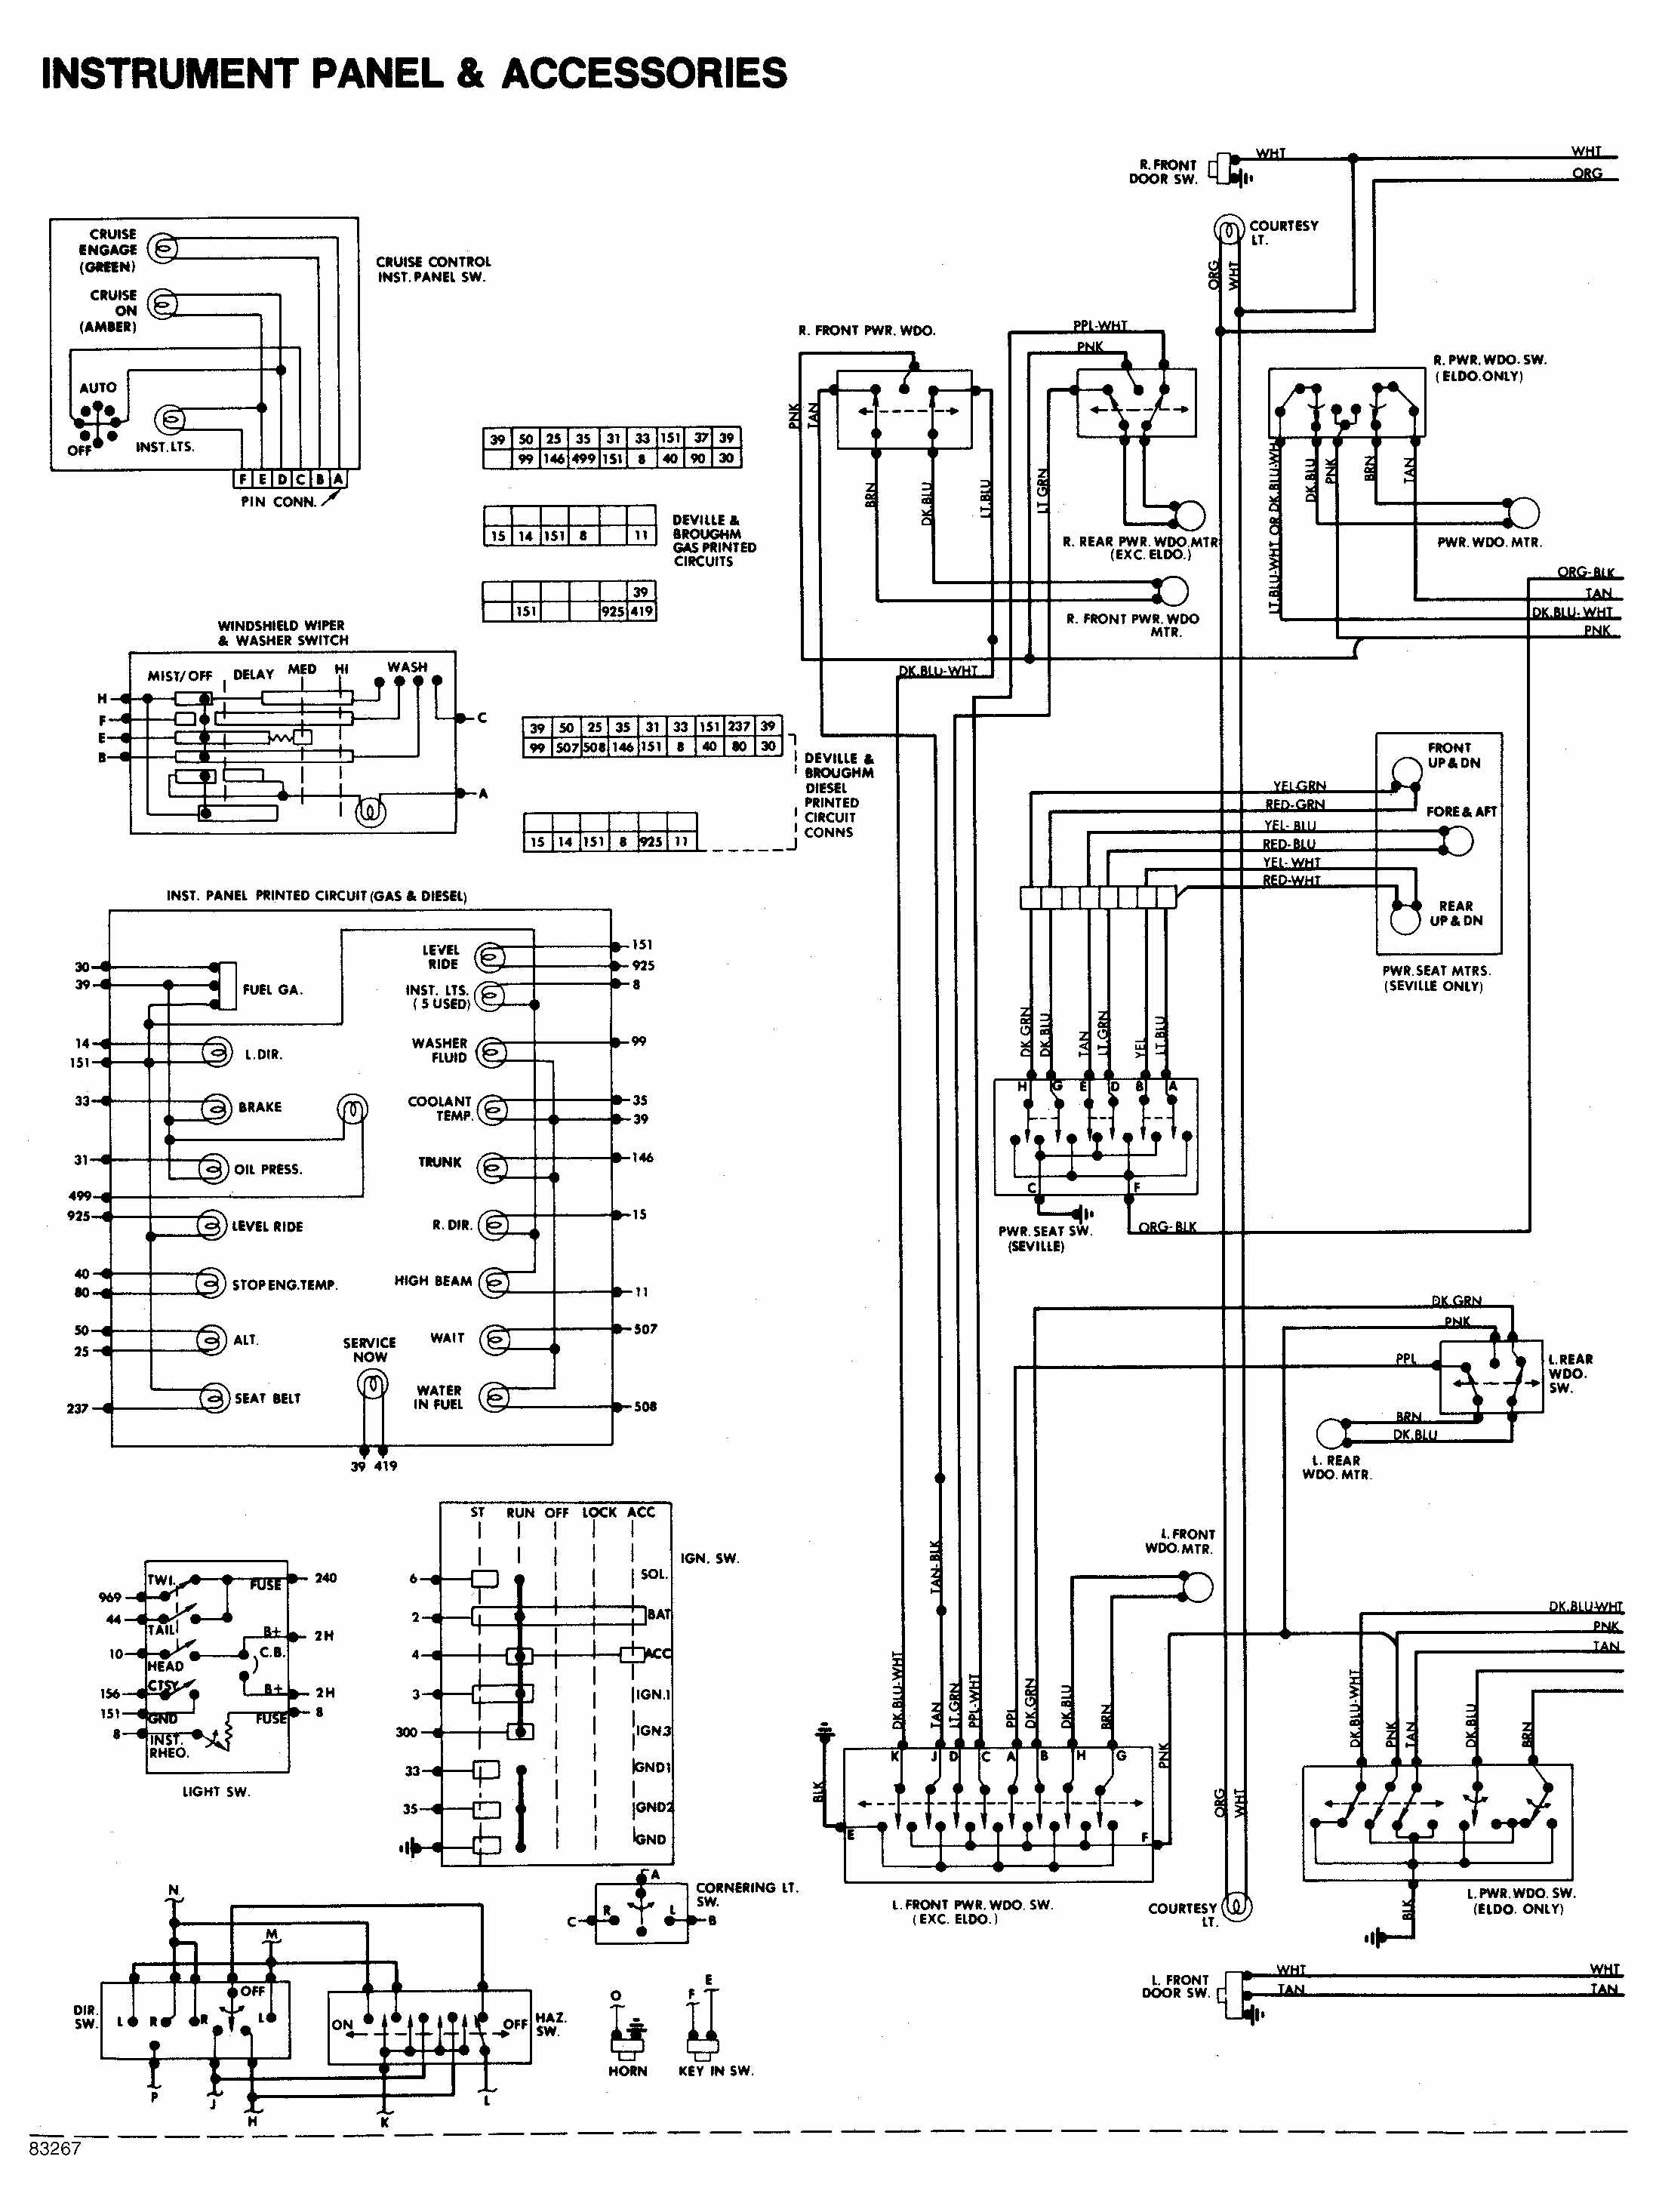 85 bronco 2 wiring diagram